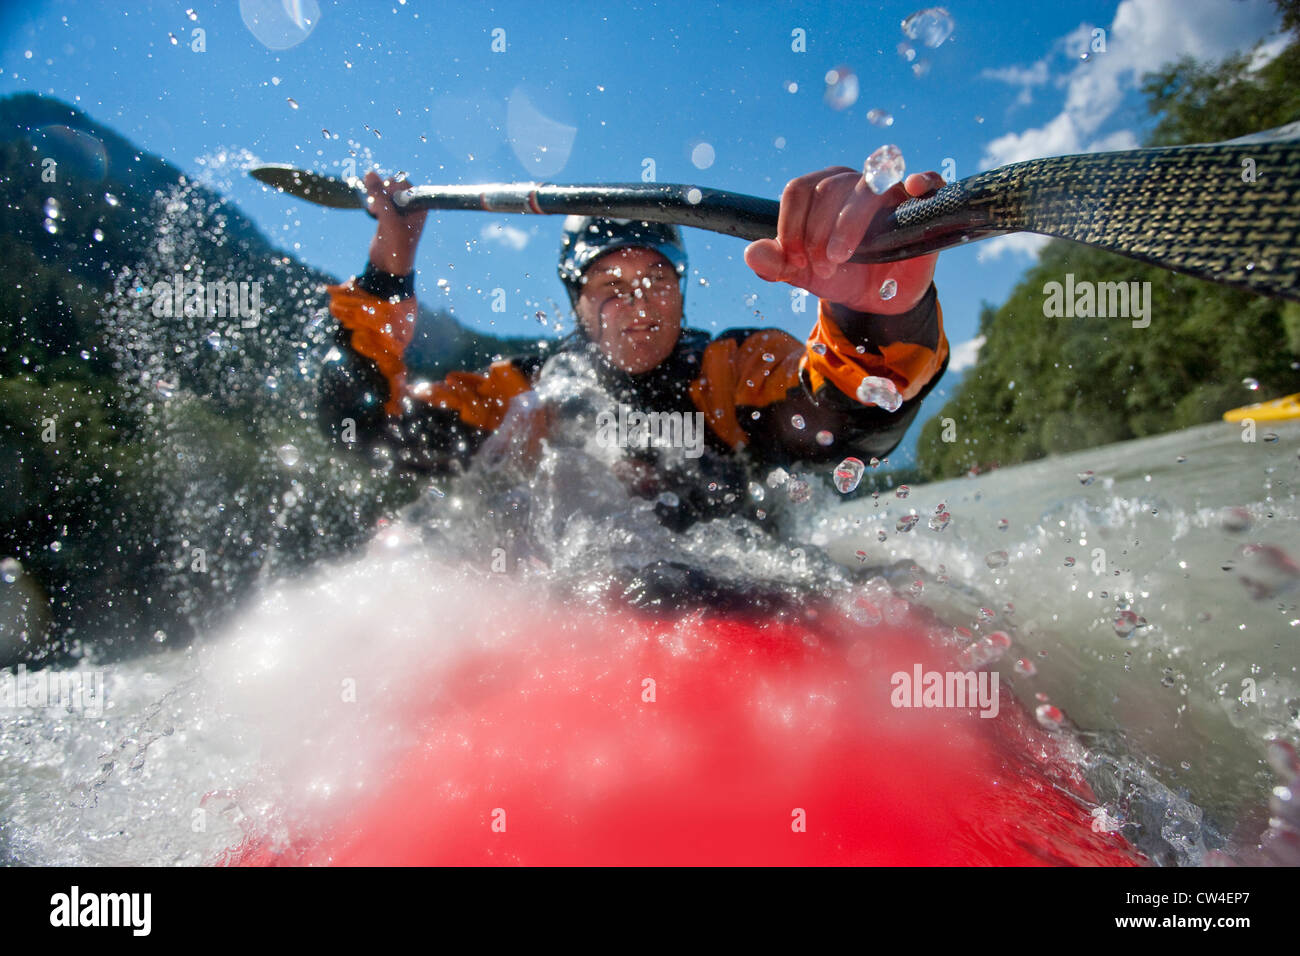 Whitewater kayaker riding rapid on Inn River near Pfunds, Austria - Stock Image